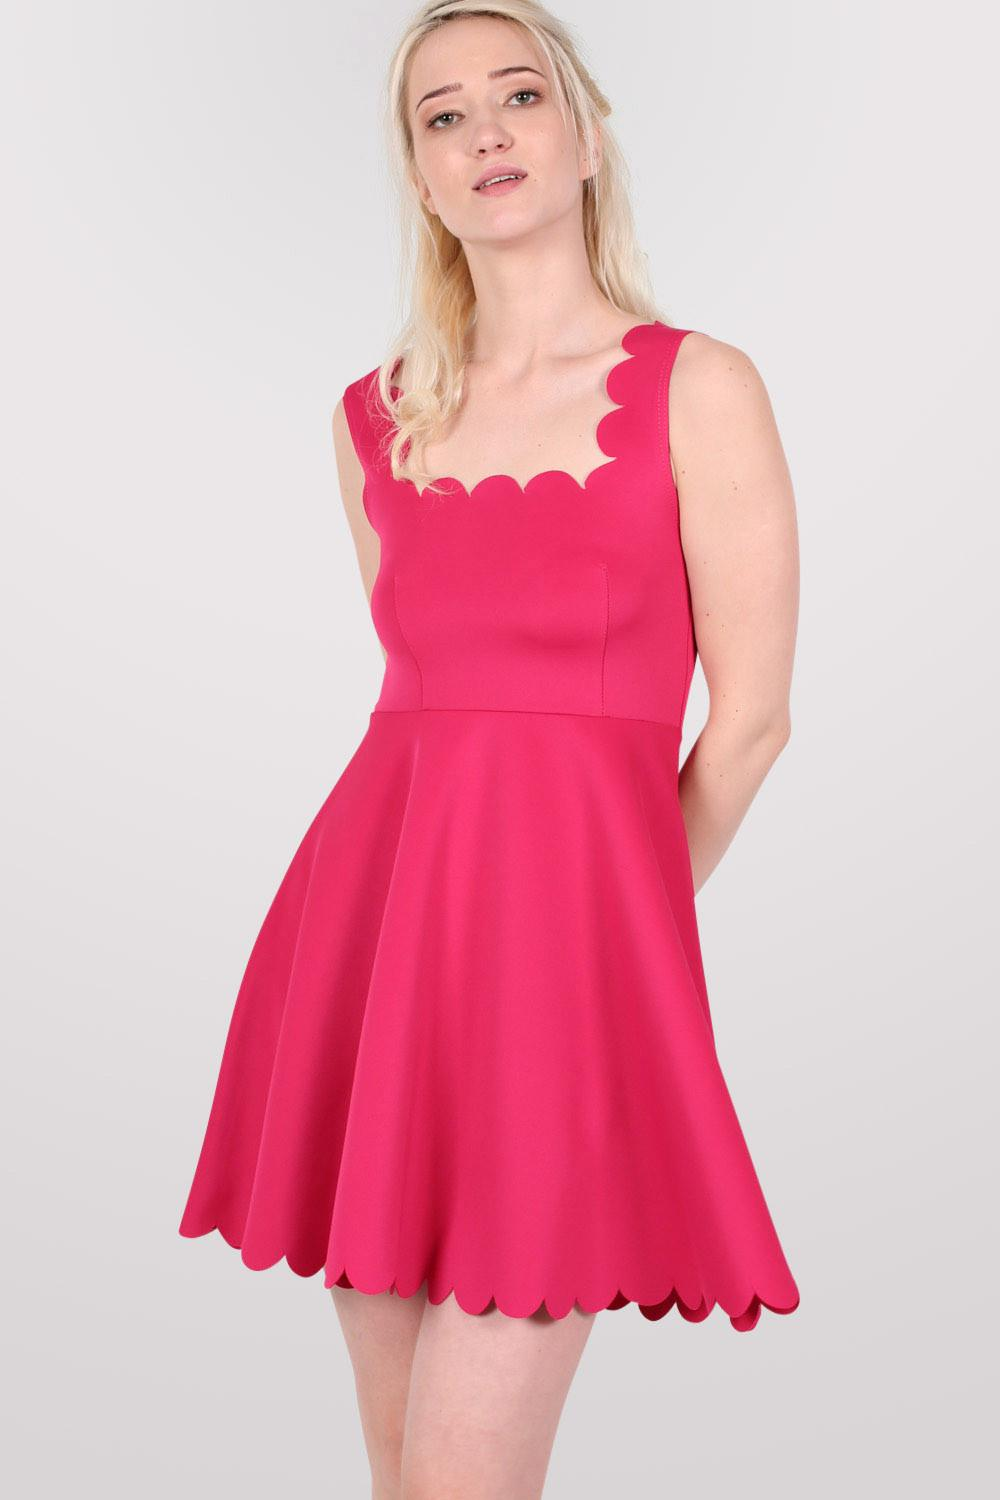 Scallop Edge Skater Dress in Cerise Pink MODEL FRONT